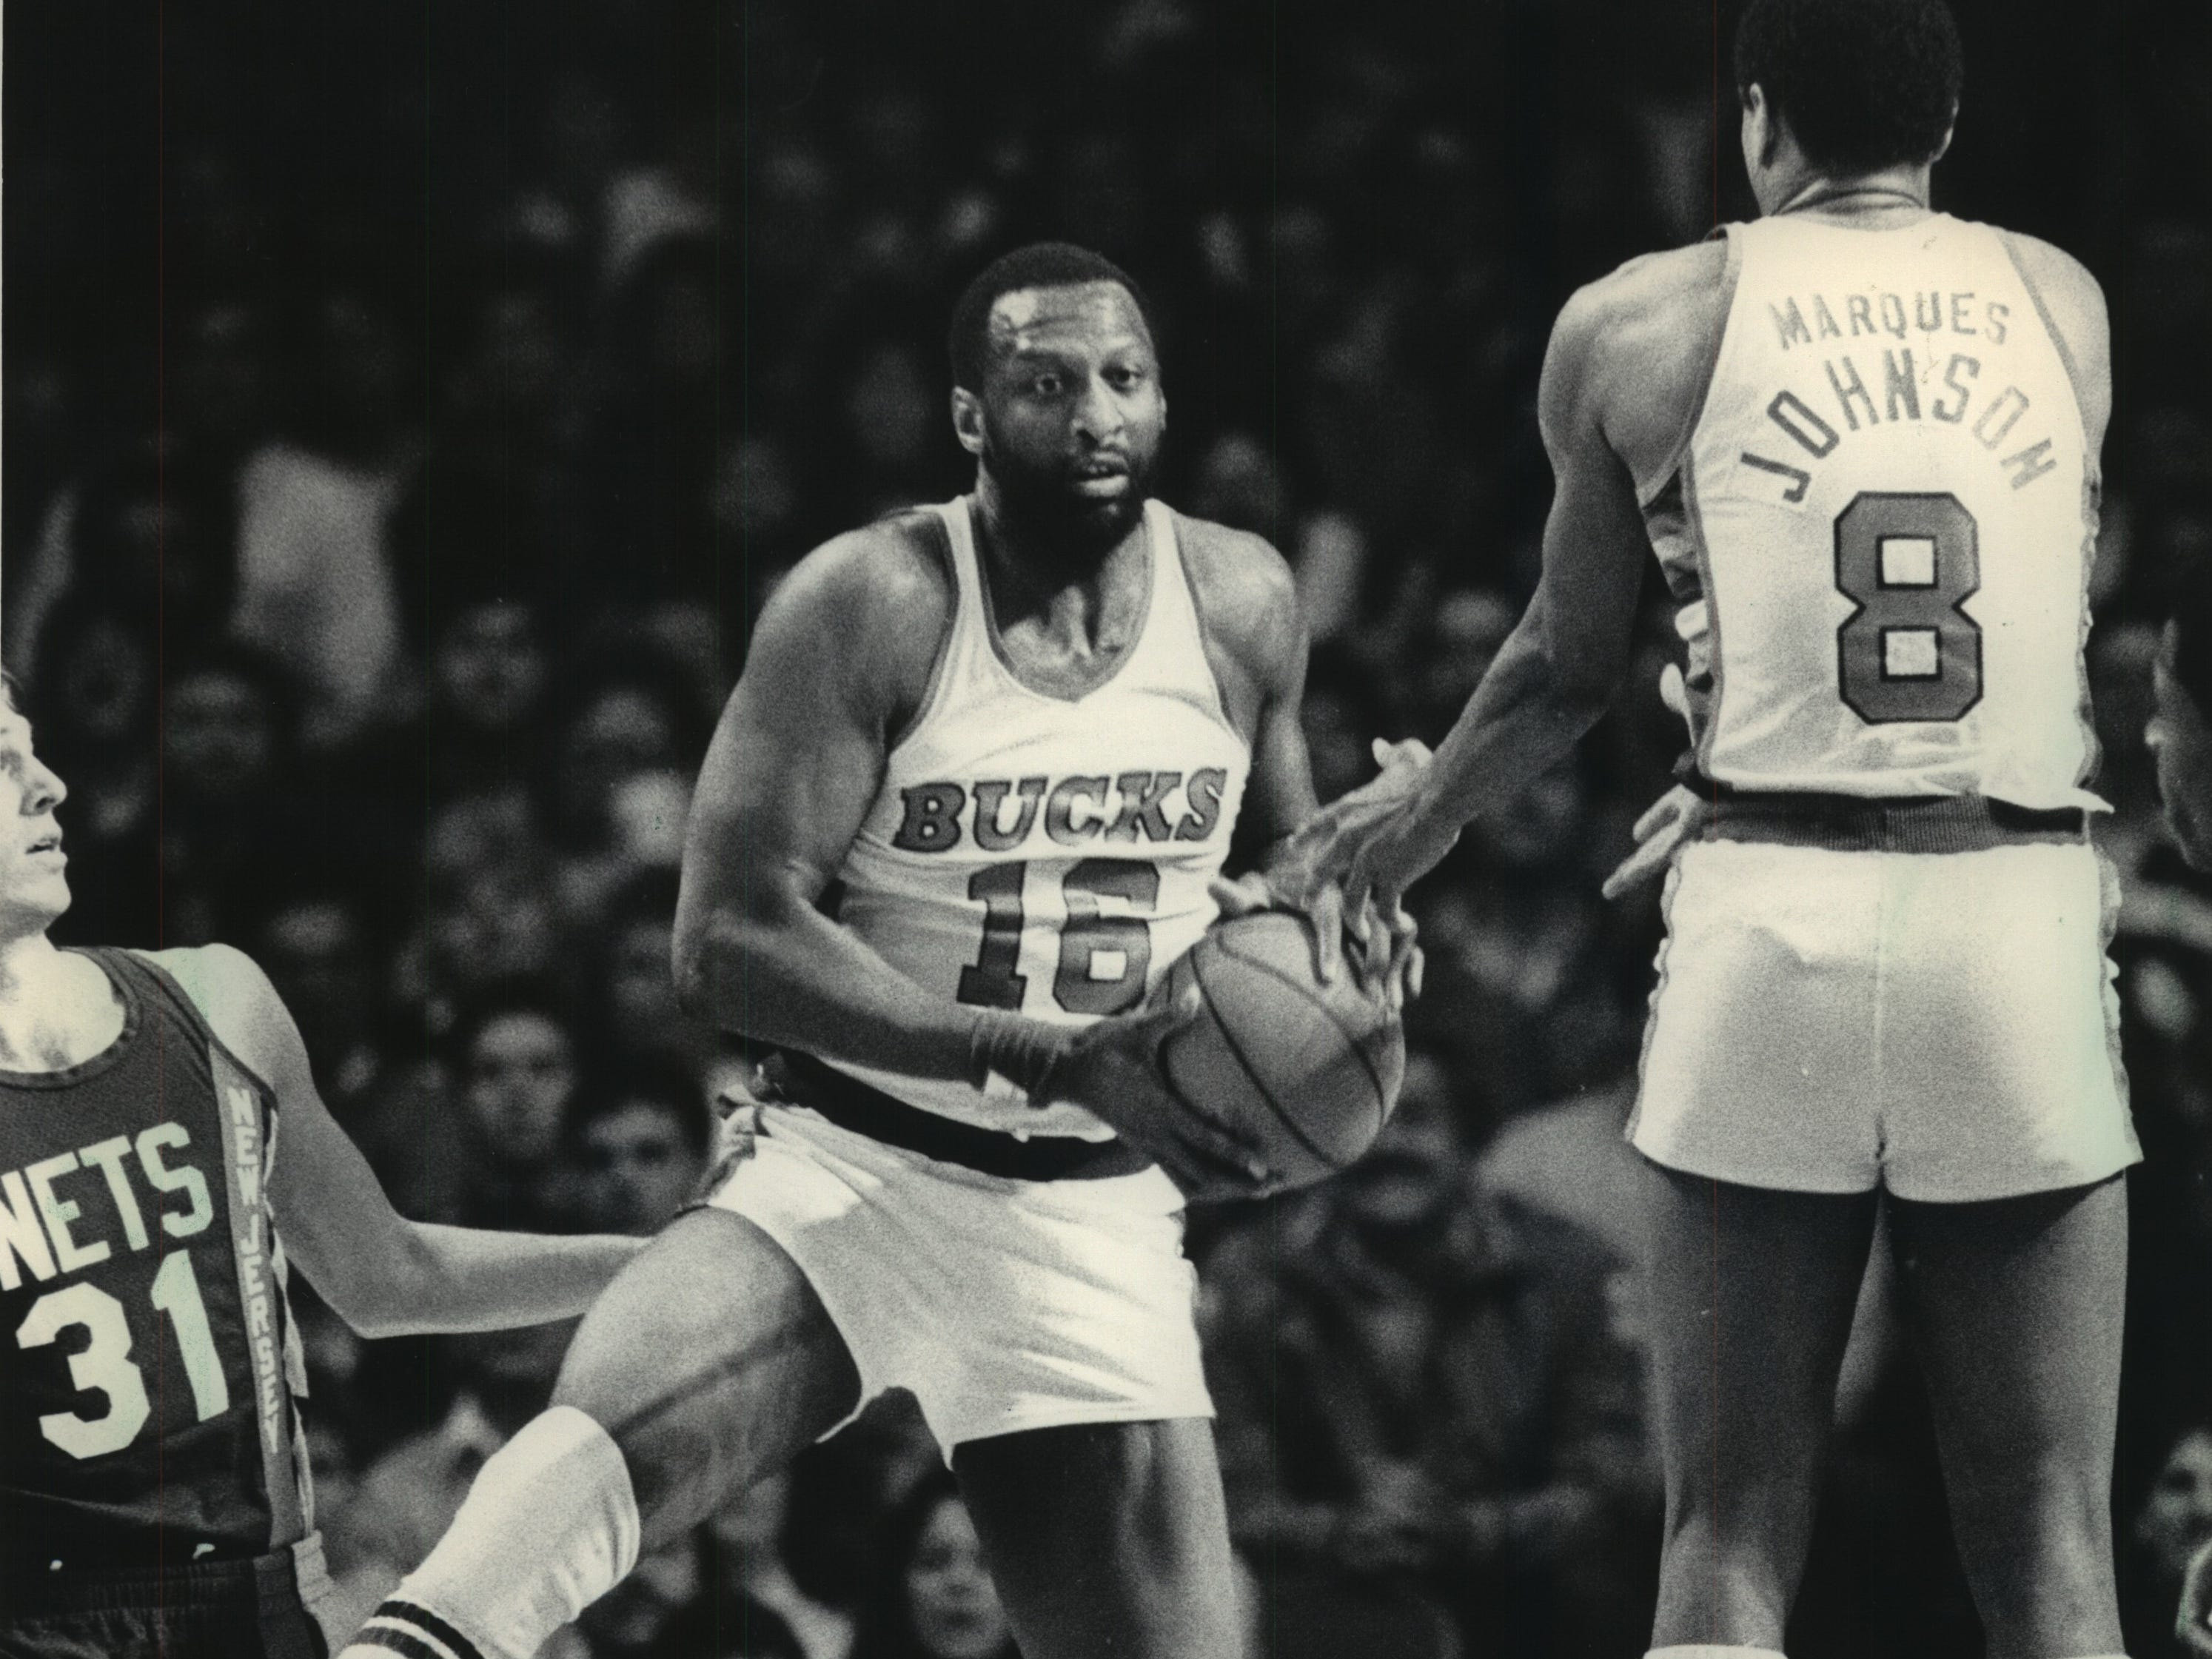 1984: Bob Lanier (center) and Marques Johnson go up for a rebound during Game 1 of the Eastern Conference Semifinals against the New Jersey Nets at the Milwaukee Arena on April 29, 1984. The Nets won the game, 106-100, but the Bucks took the series in six games. Milwaukee then lost the conference finals to the Boston Celtics. This photo was published in the April 30, 1984, Milwaukee Sentinel.